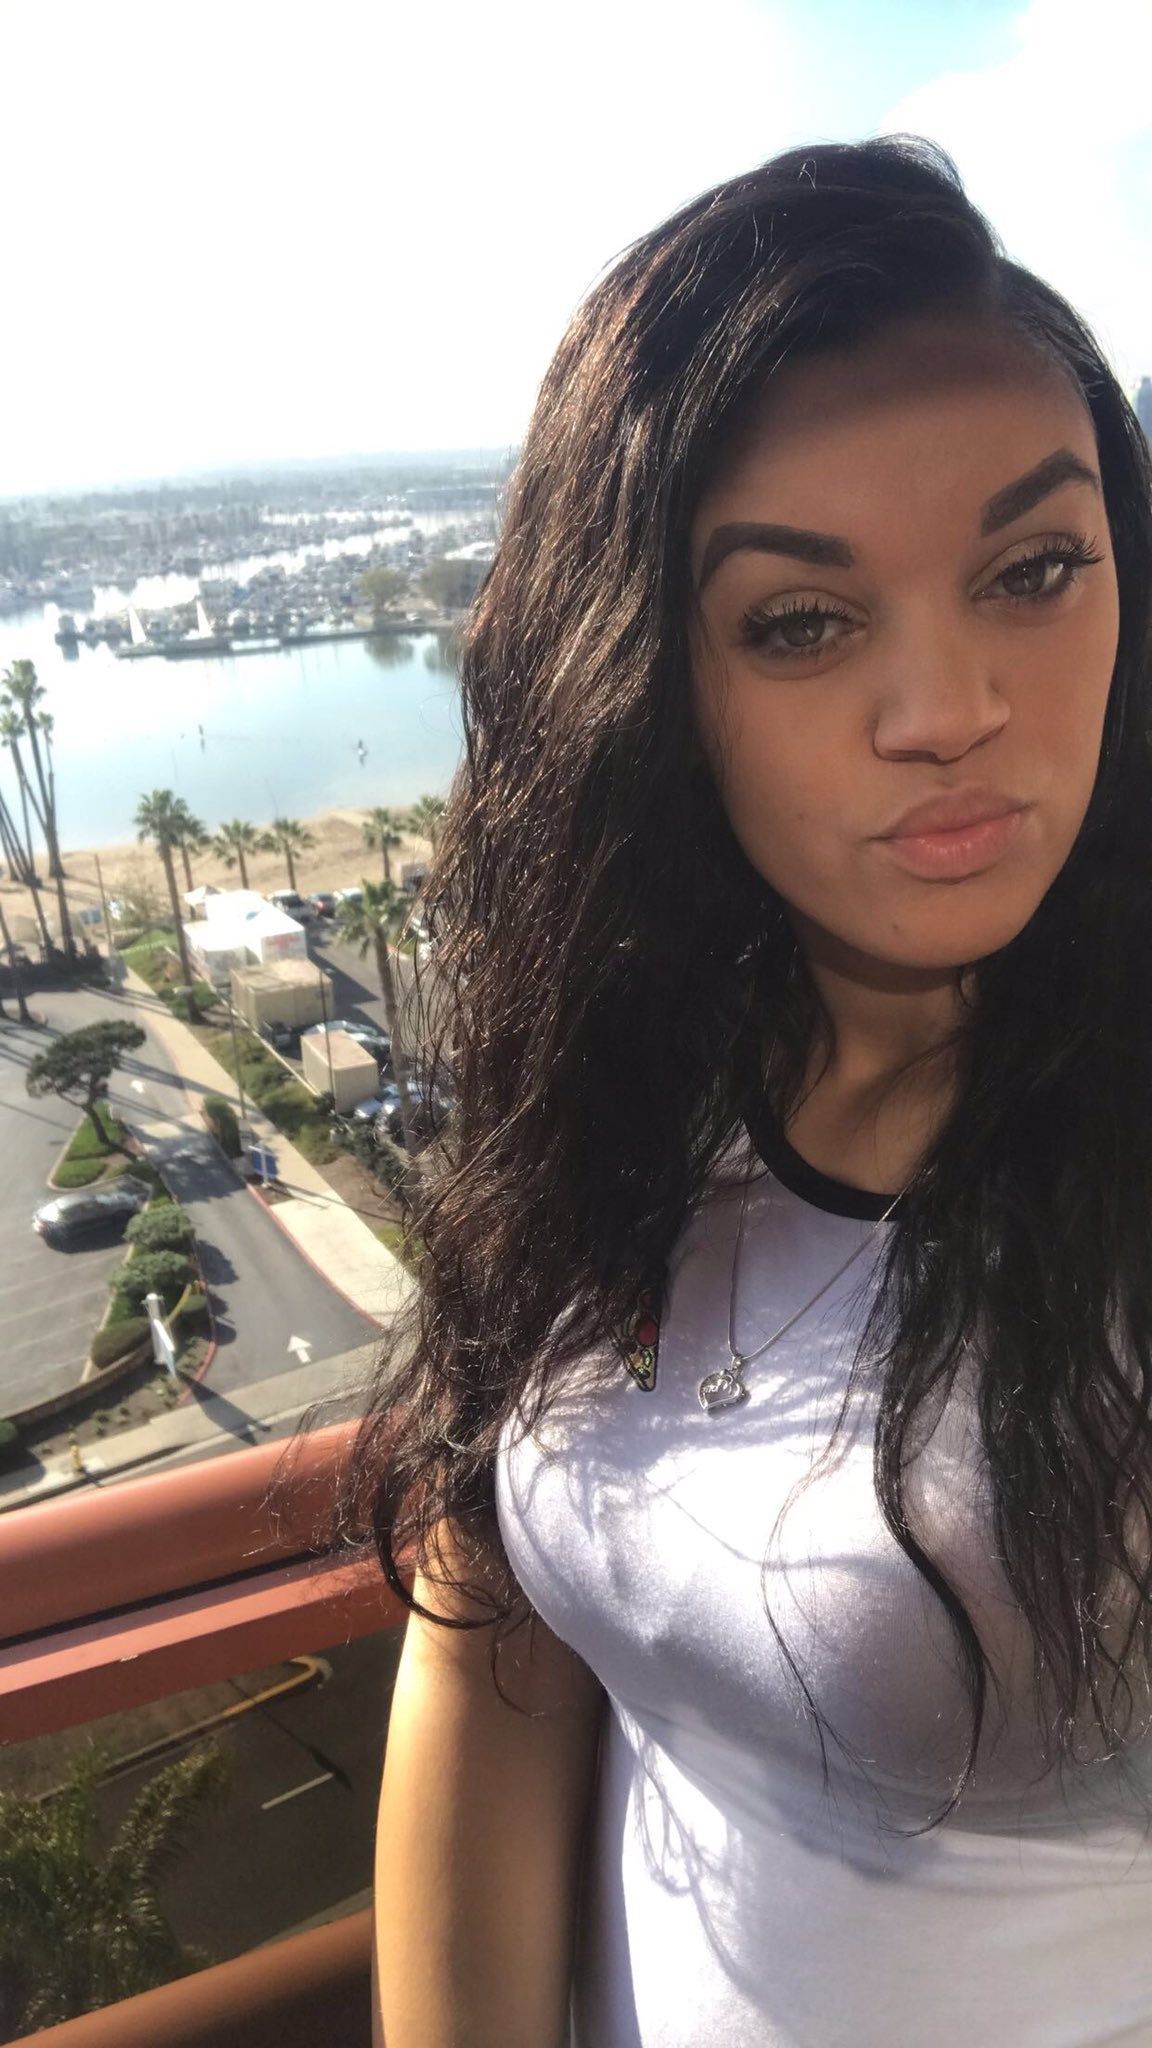 """Biannca Prince on Twitter: """"Cali"""